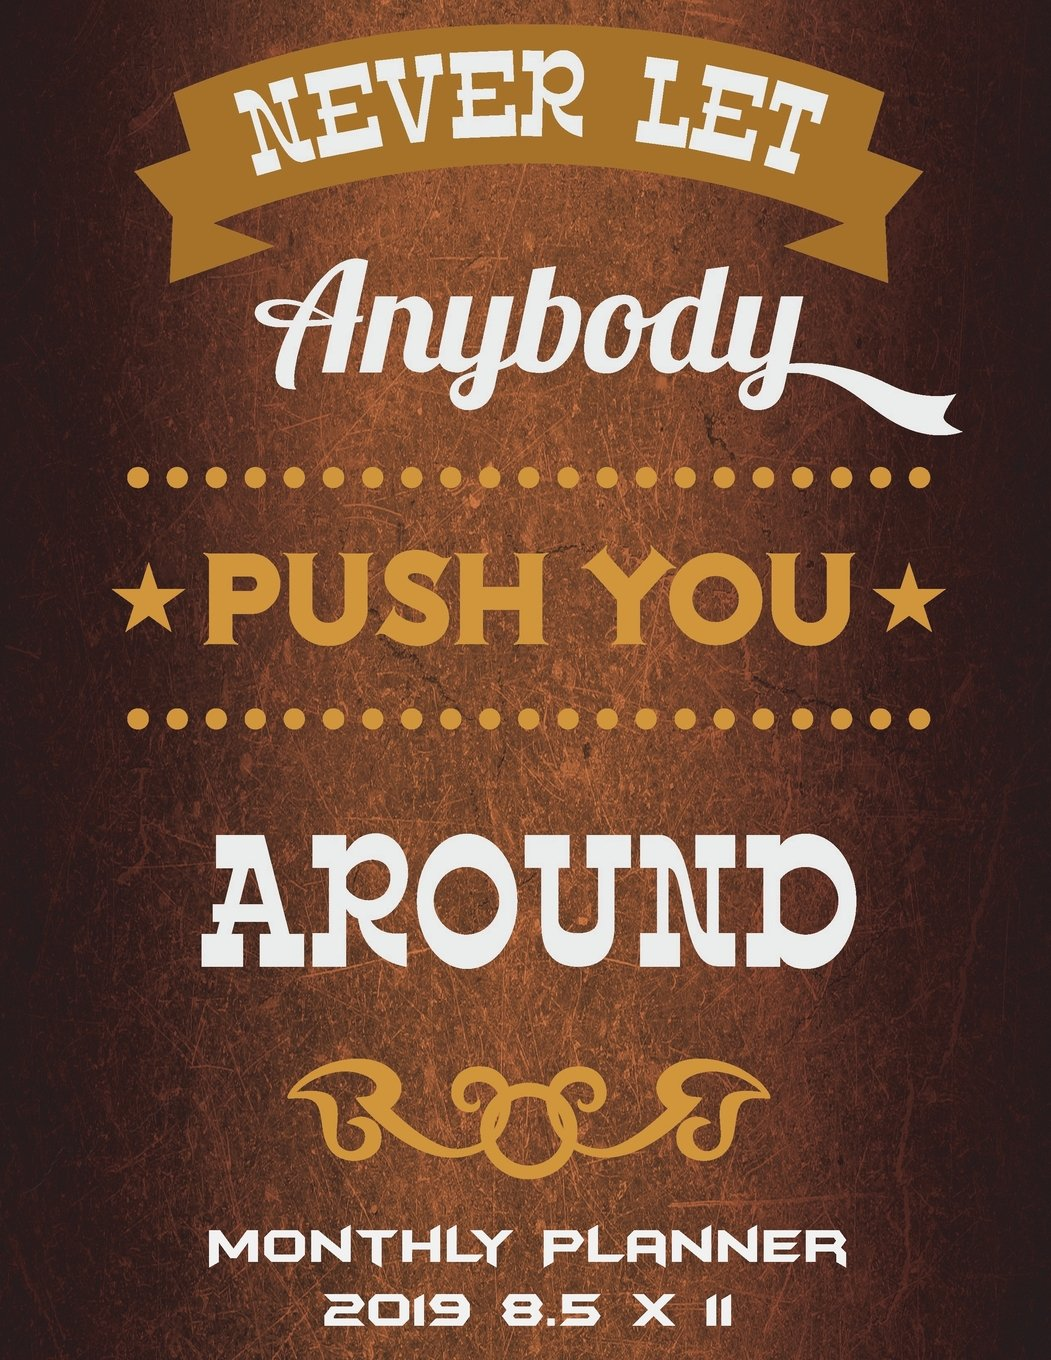 Never Let Anybody Push You Around: Monthly Planner 2019 8.5 x 11: Stronger Quotes, Monthly Calendar Book 2019, Weekly/Monthly/Yearly Calendar Journal, ... Agenda Planner, Calendar Schedule Organizer pdf epub